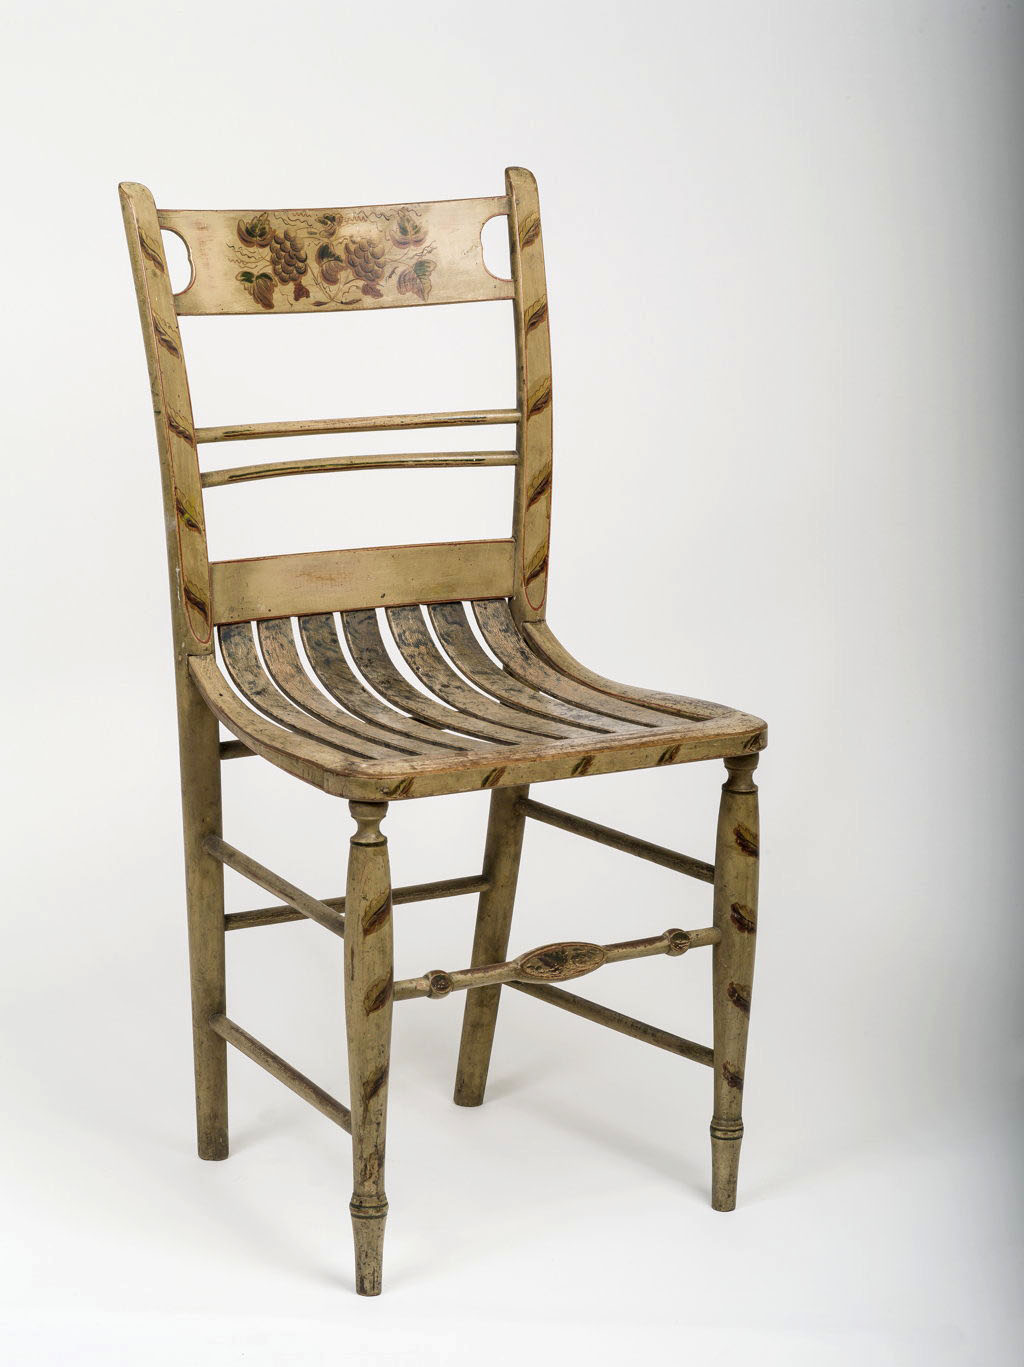 A rare bentwood chair